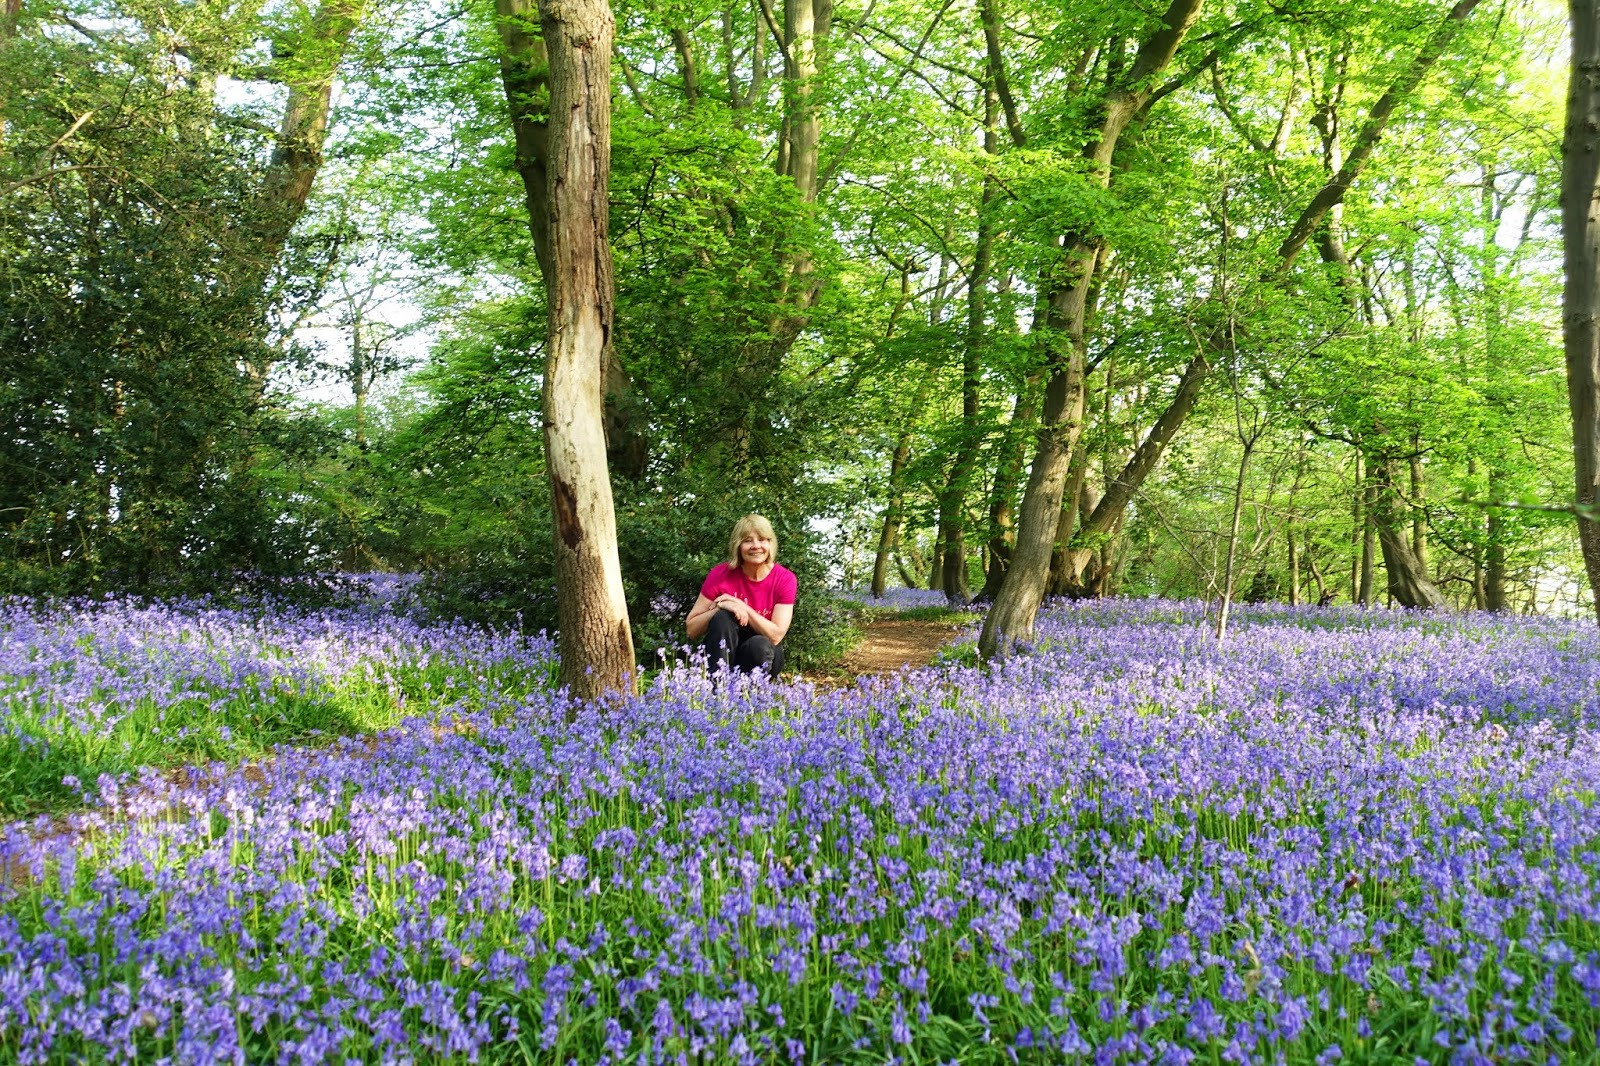 Staying on the path:  Is This Mutton? blogger Gail Hanlon on a walk through a secret bluebell wood